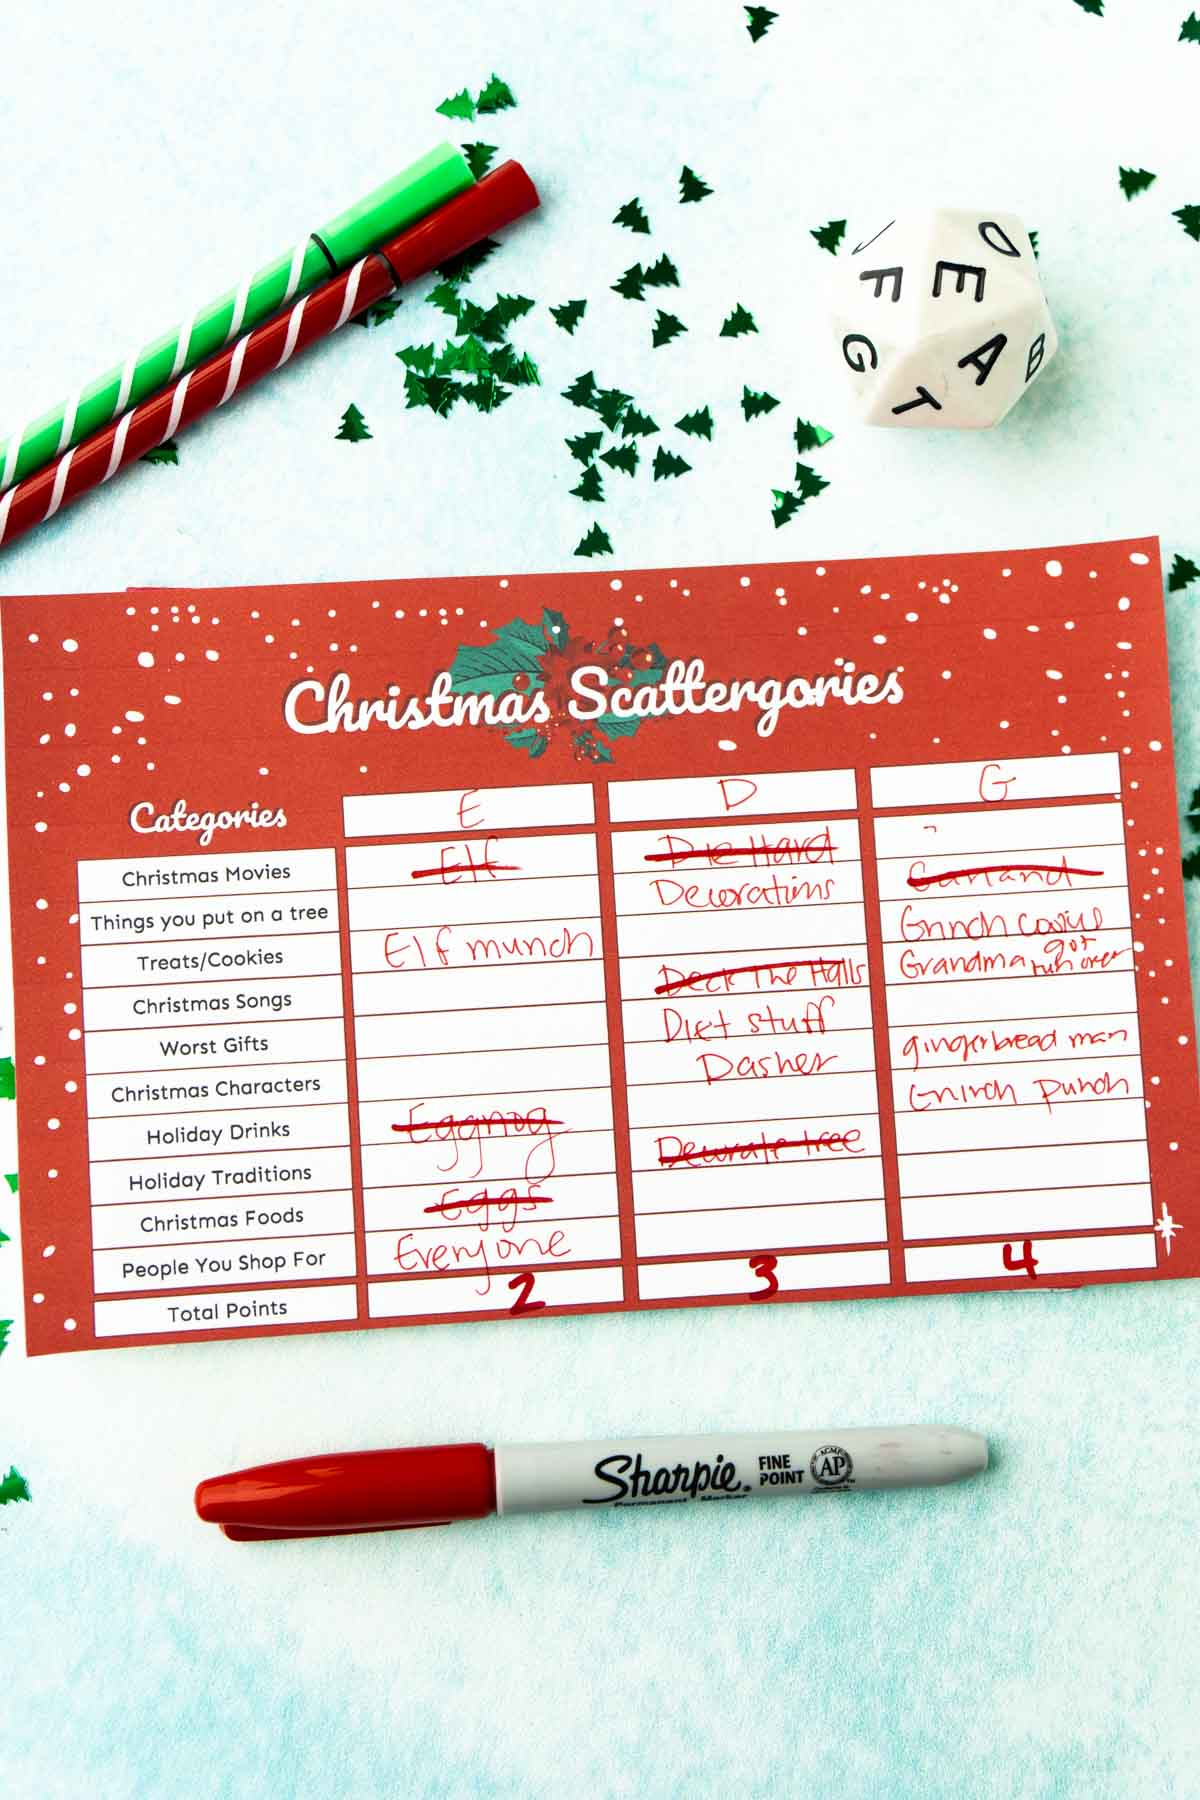 Scored Christmas scattergories card